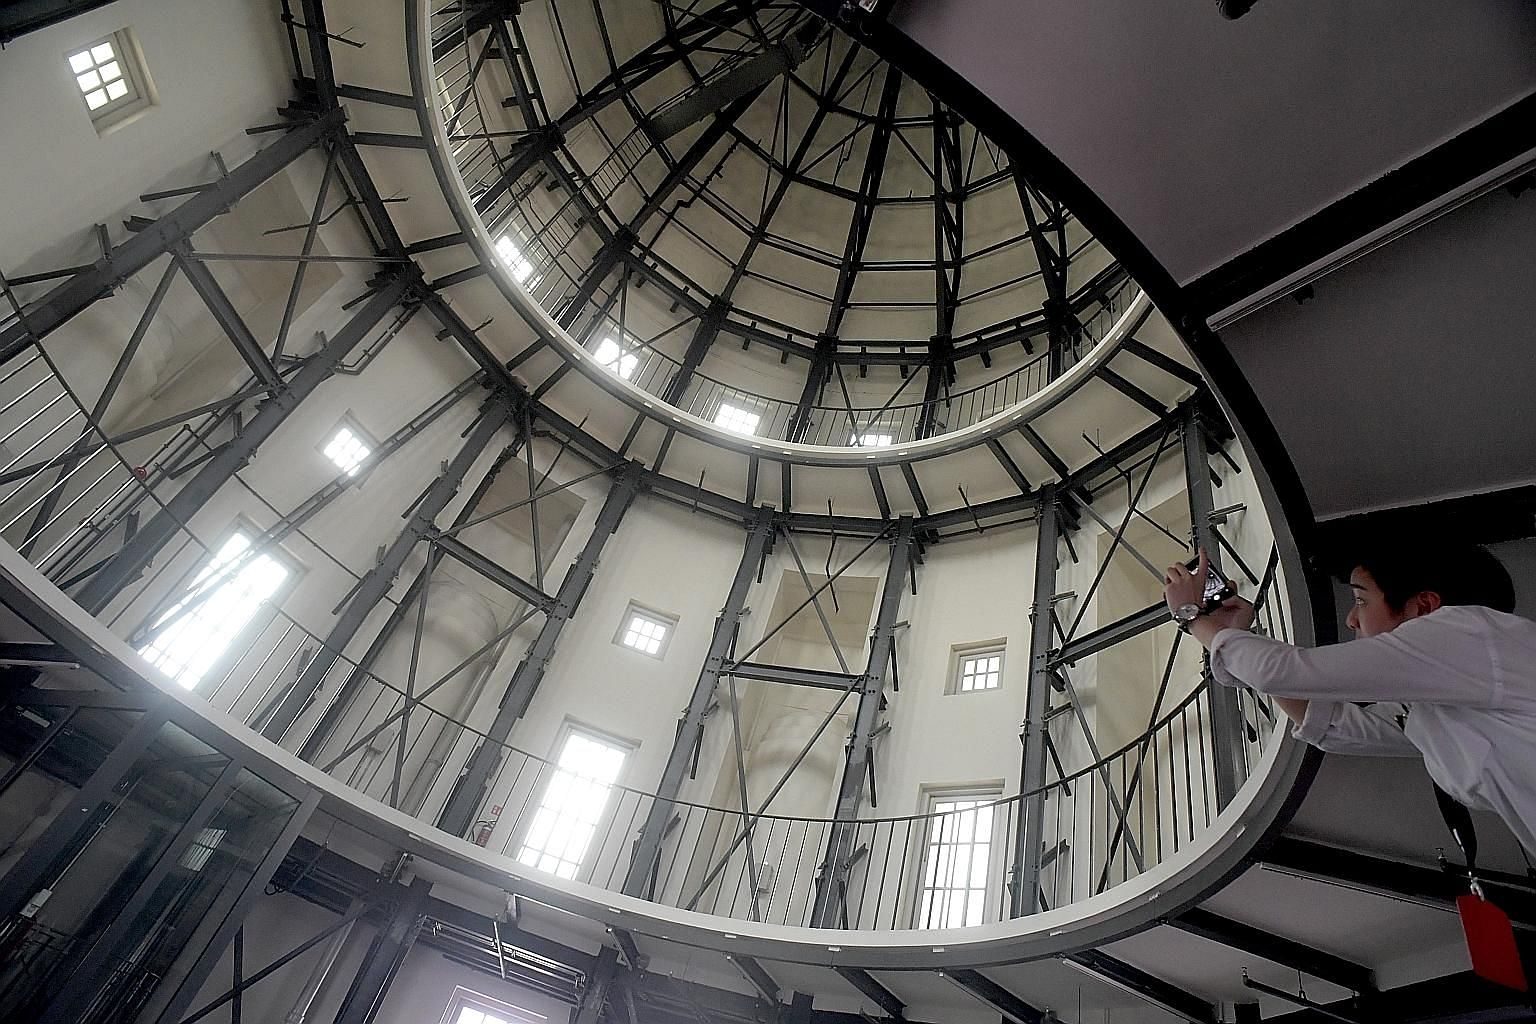 The ArchiGallery's first exhibition features a 360-degree tour of the former Supreme Court's main dome (above) and a similar virtual tour of a passageway leading from the holding cells to a former courtroom (below).